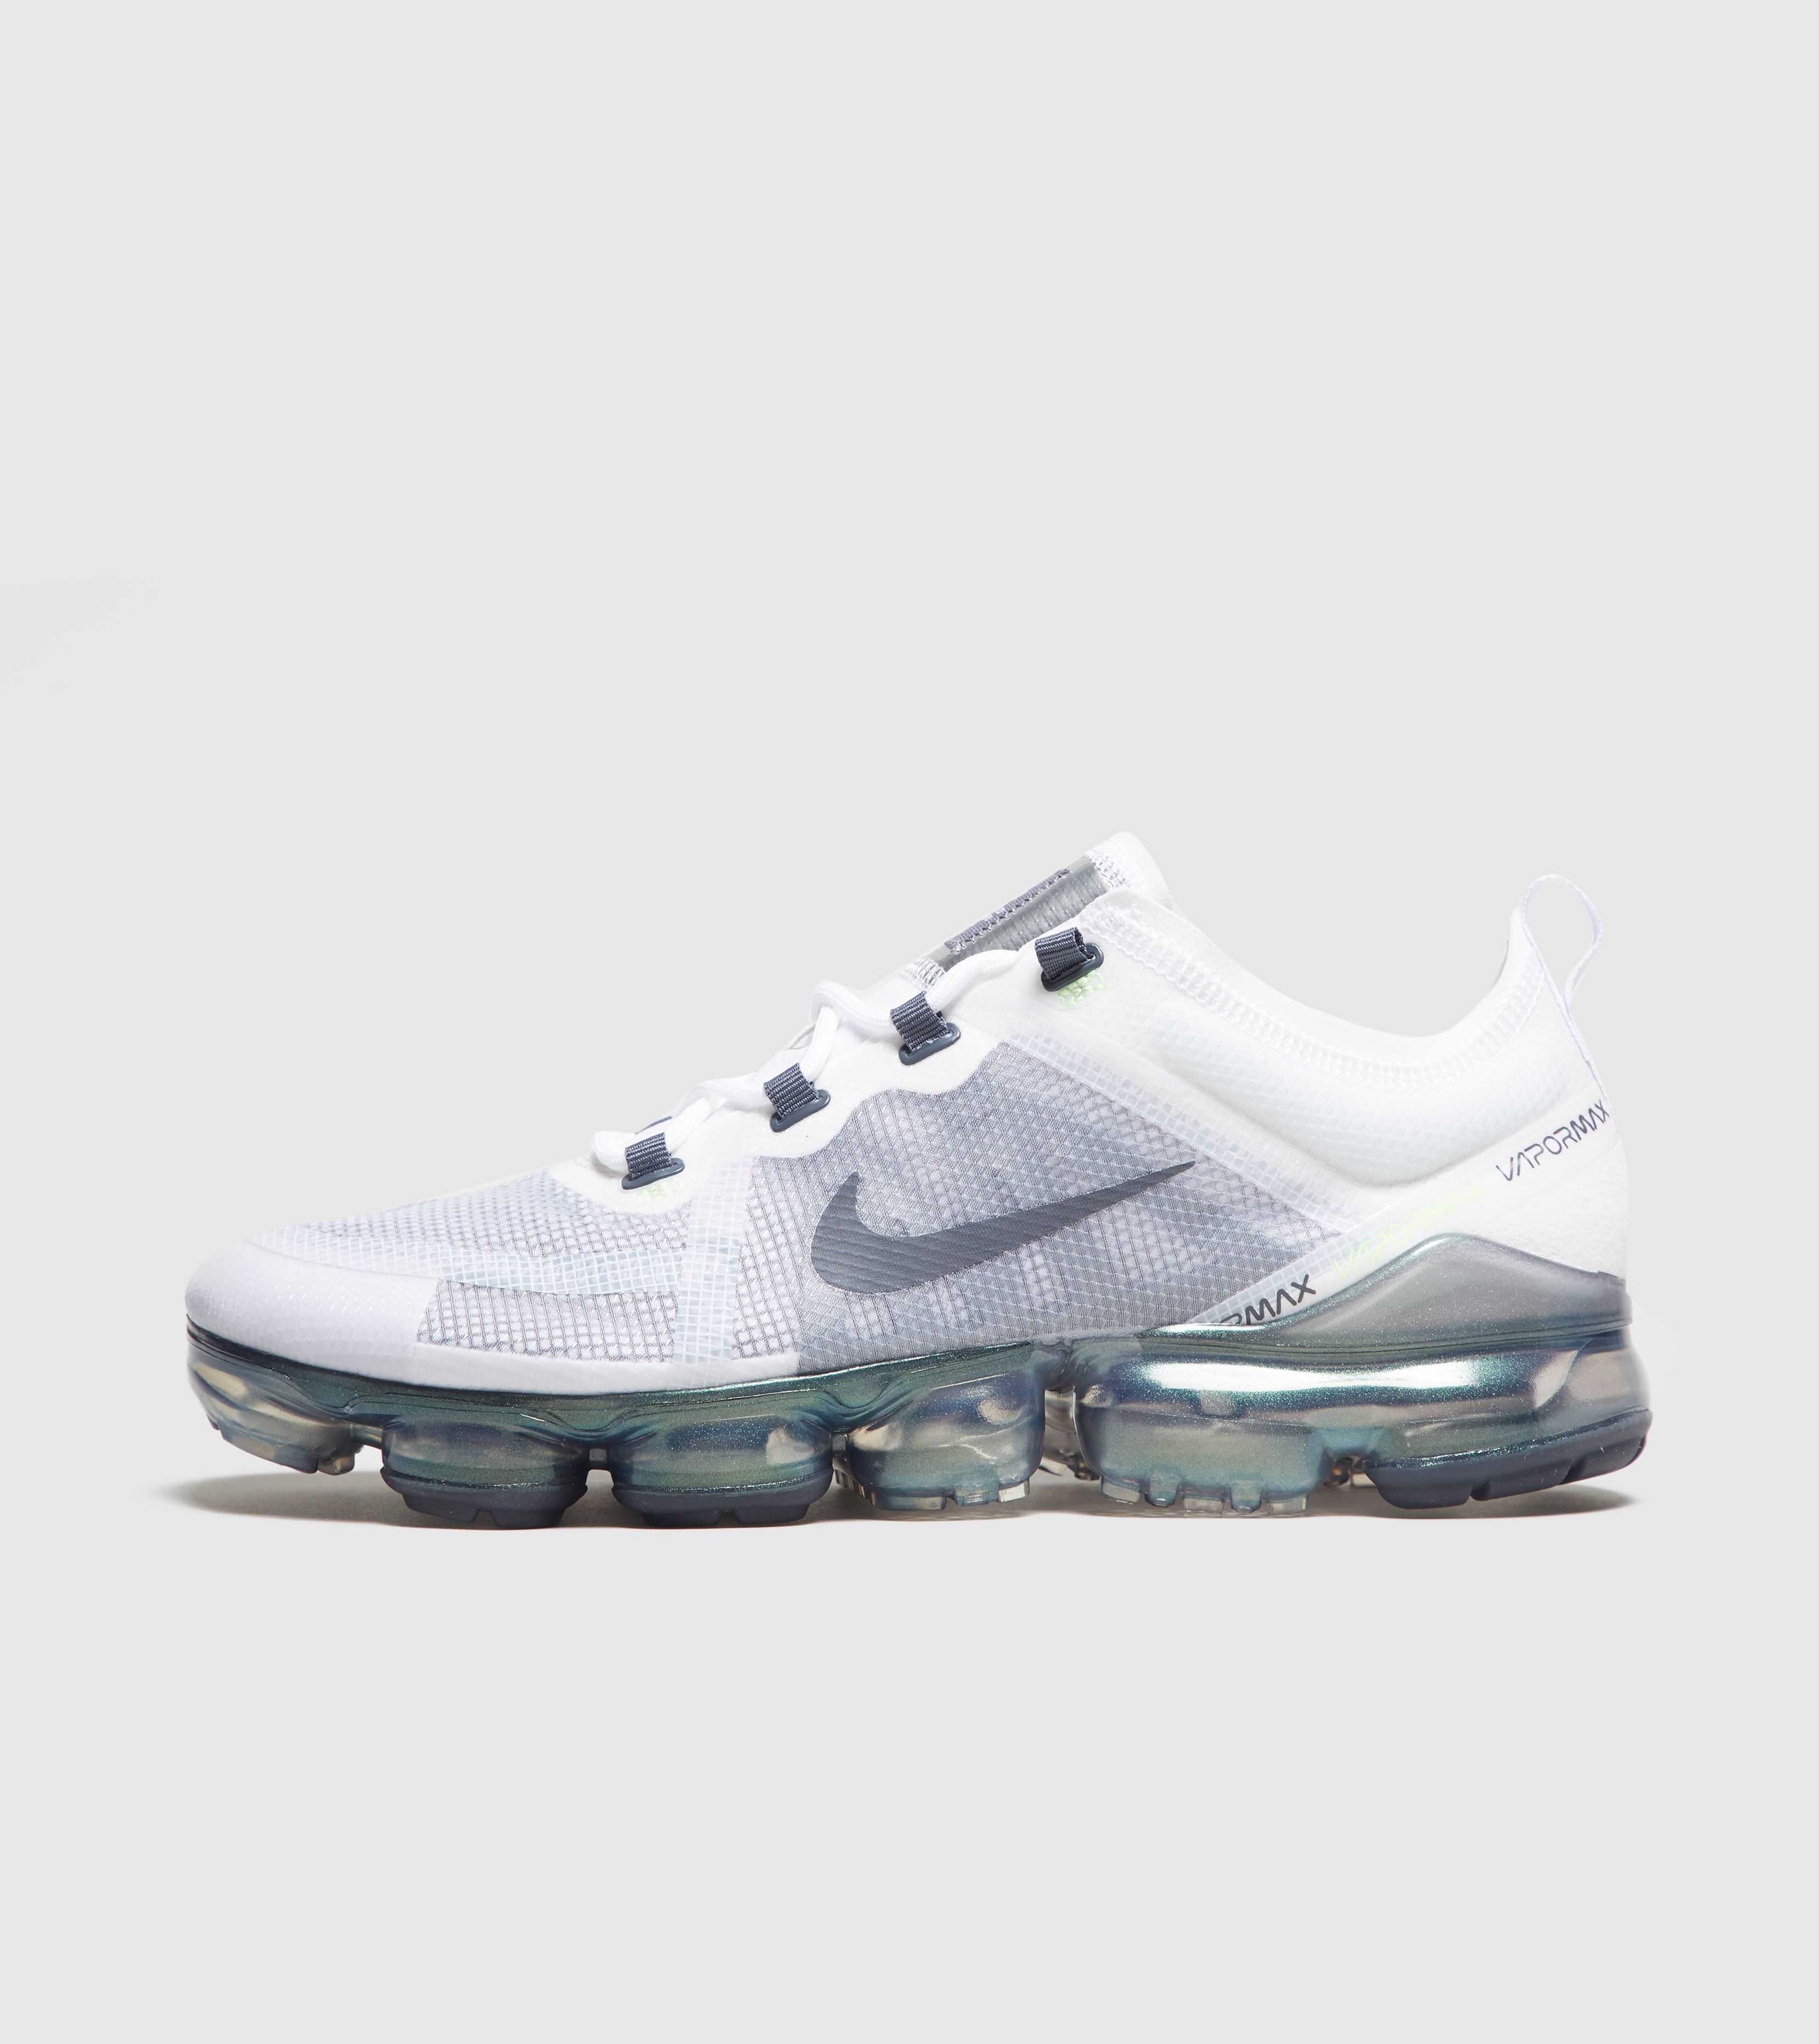 check out 6ea92 dd043 Nike Air VaporMax 2019   Size